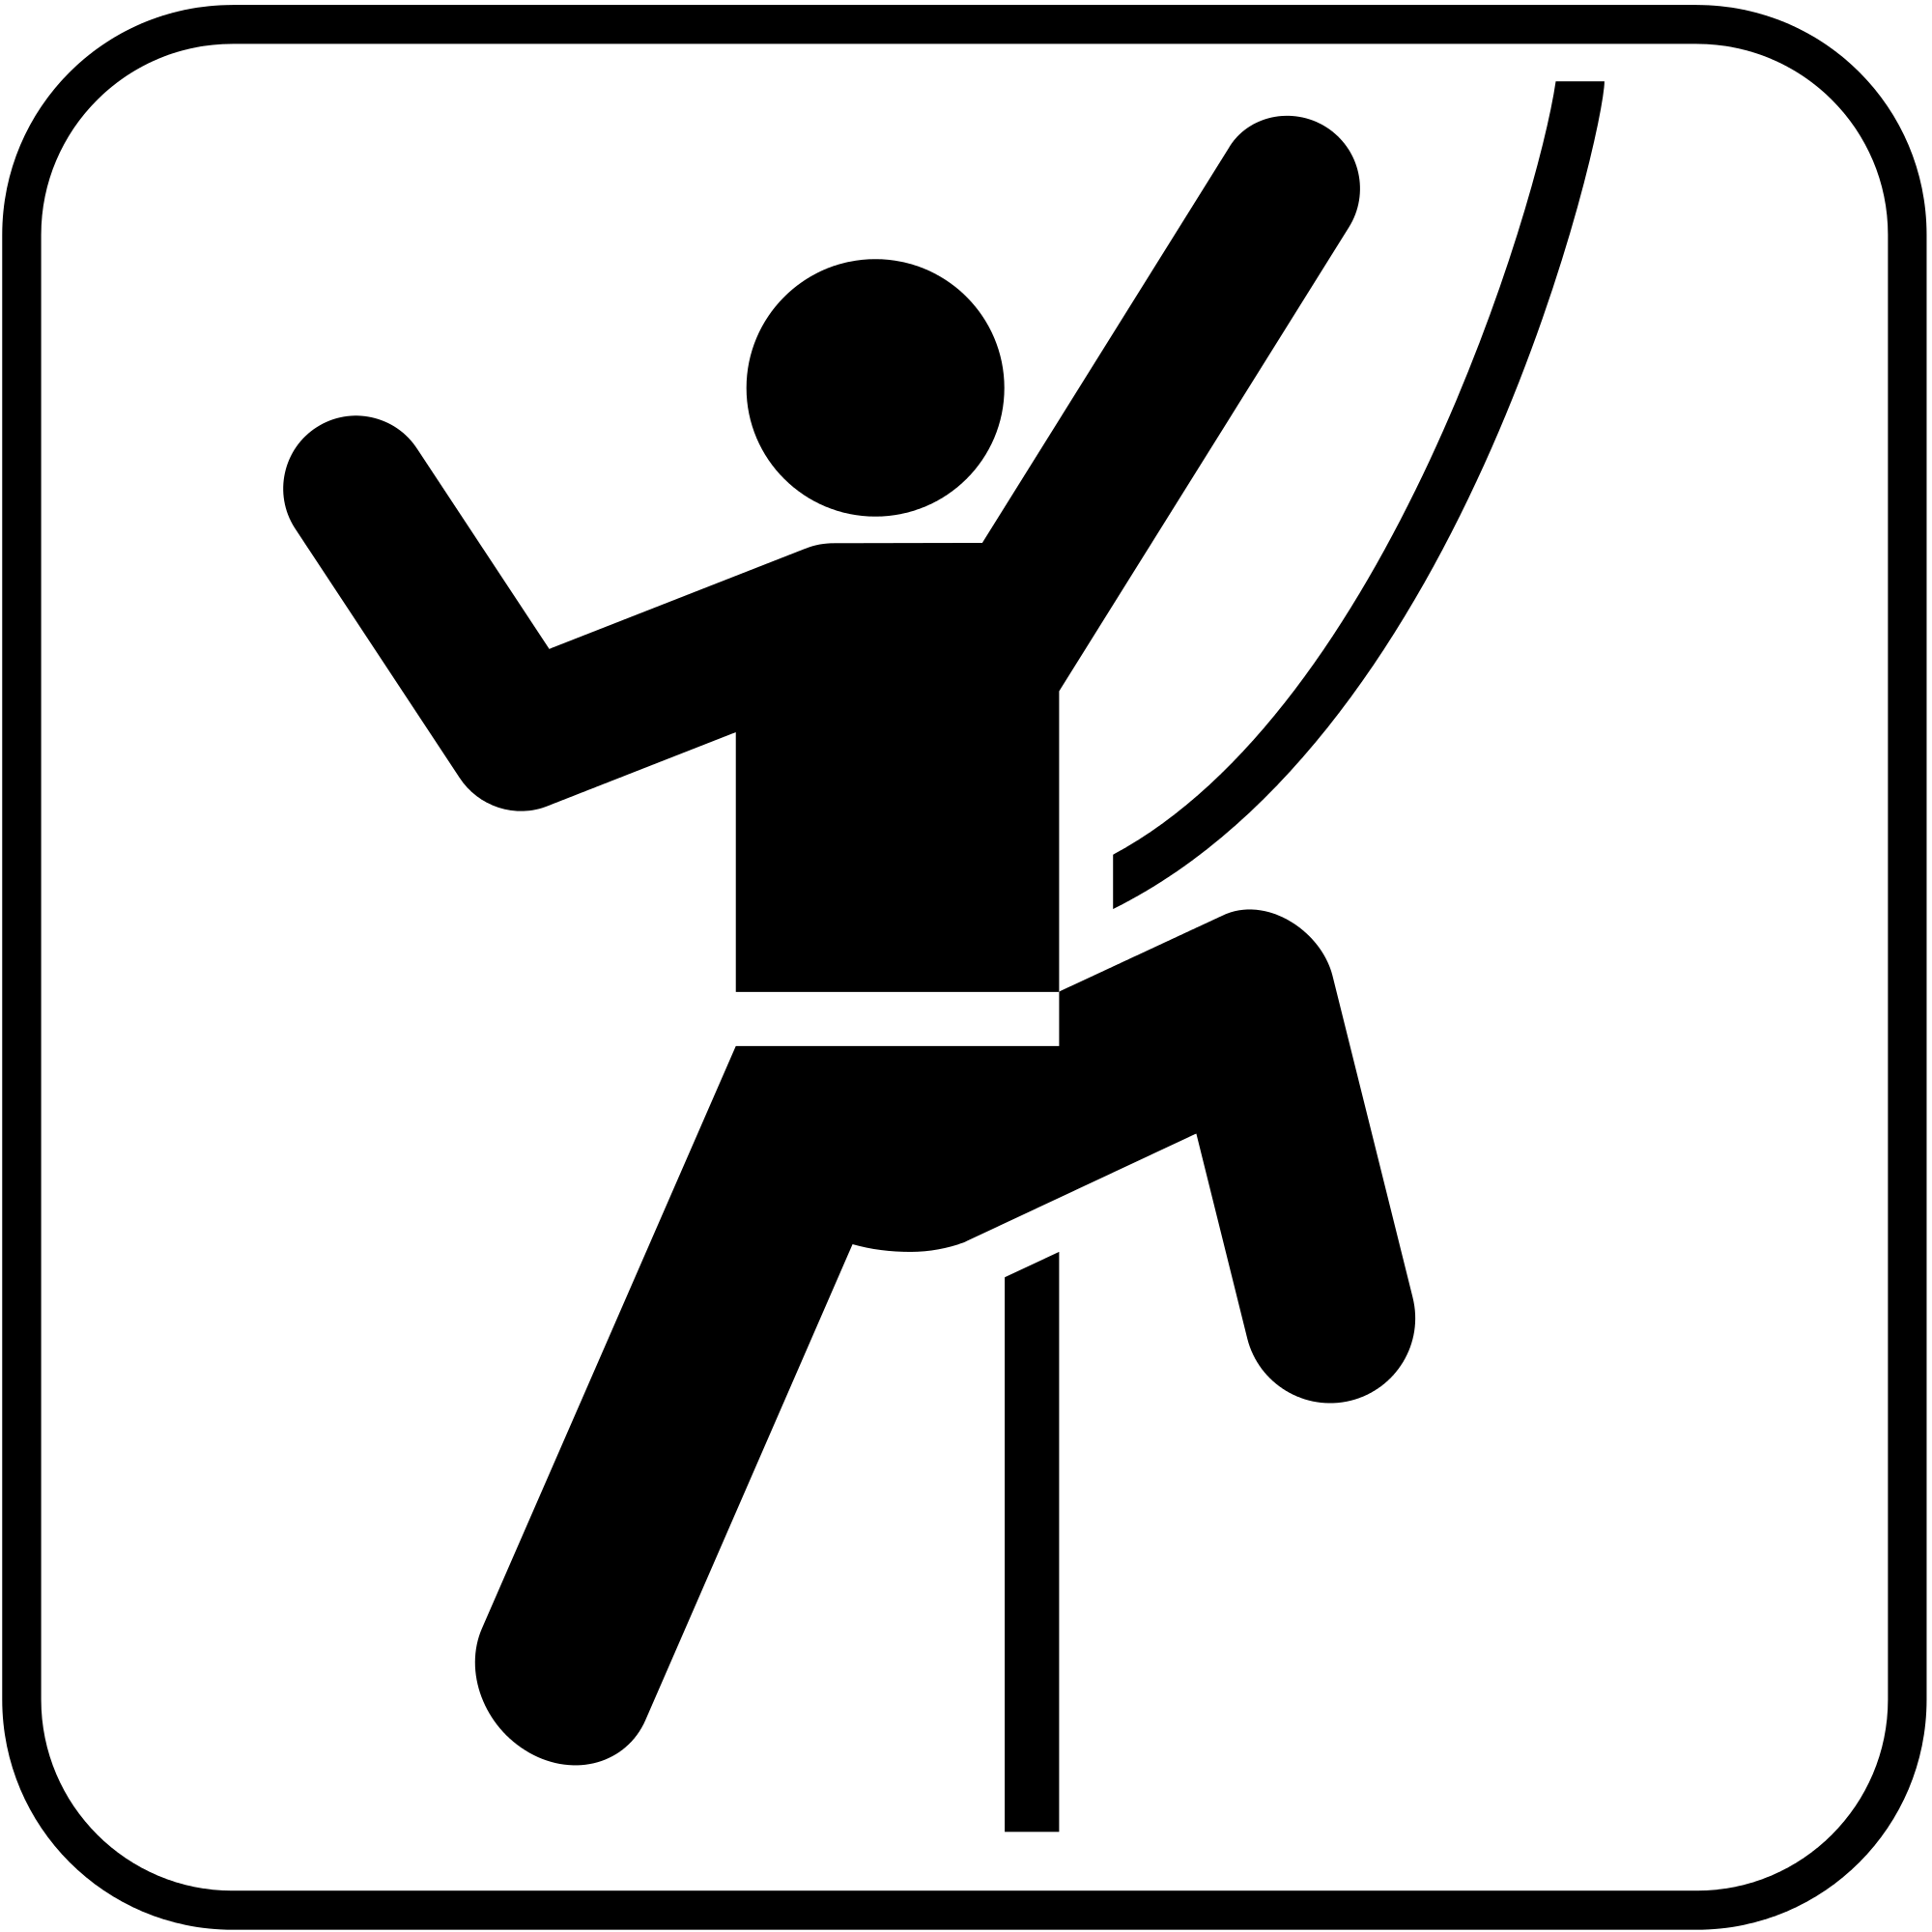 File:Pictograms.